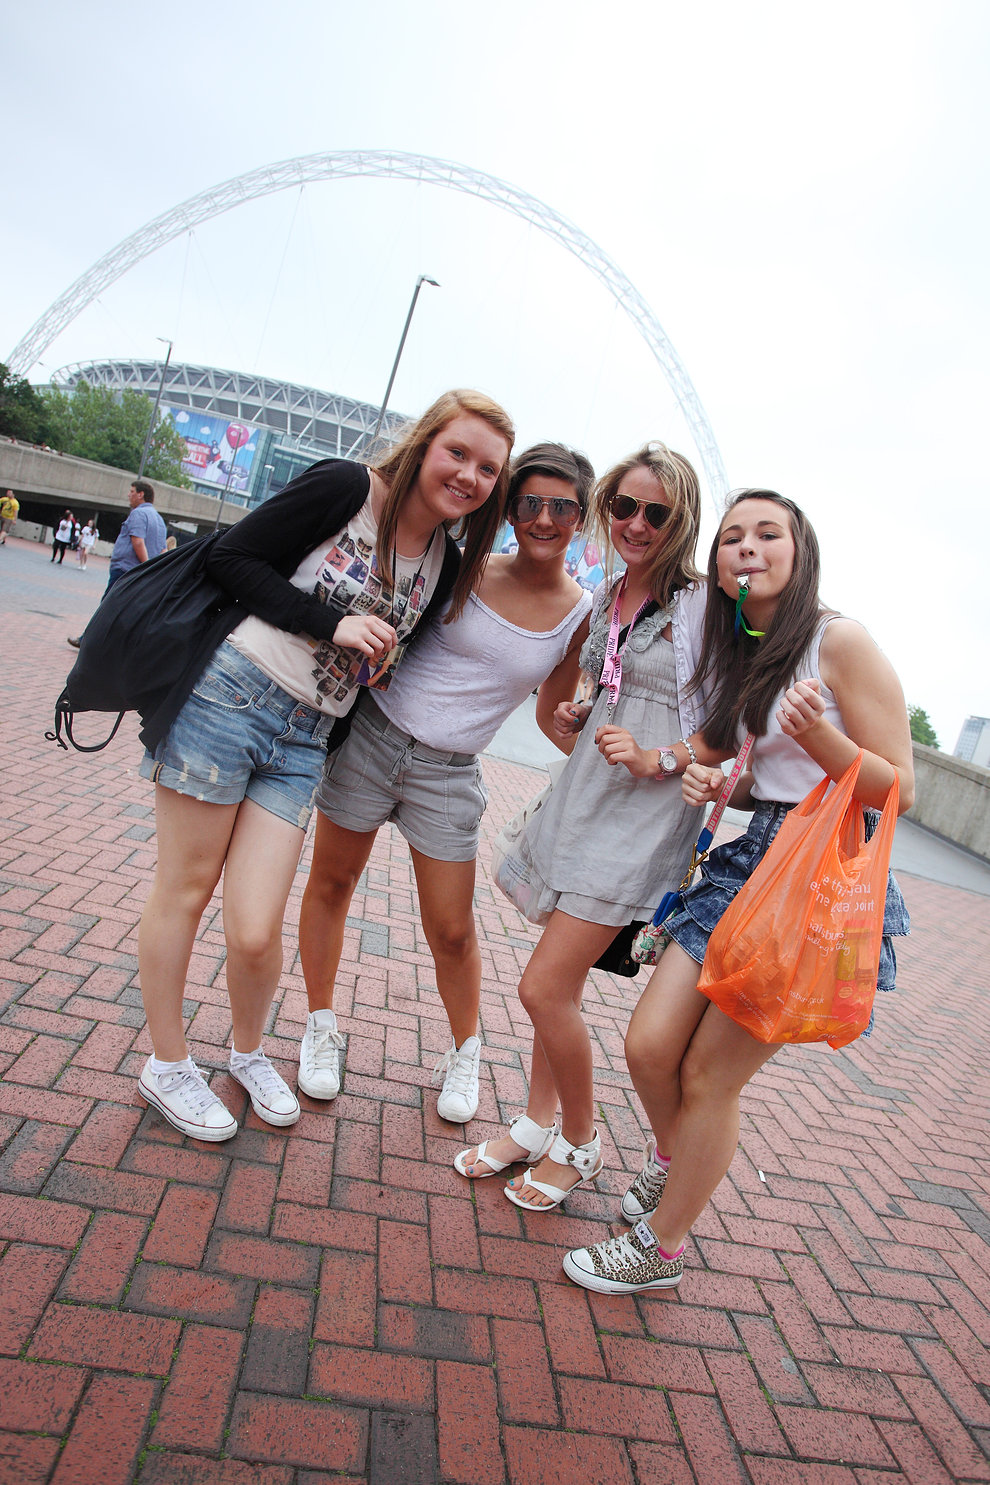 Girls arriving at Wembley